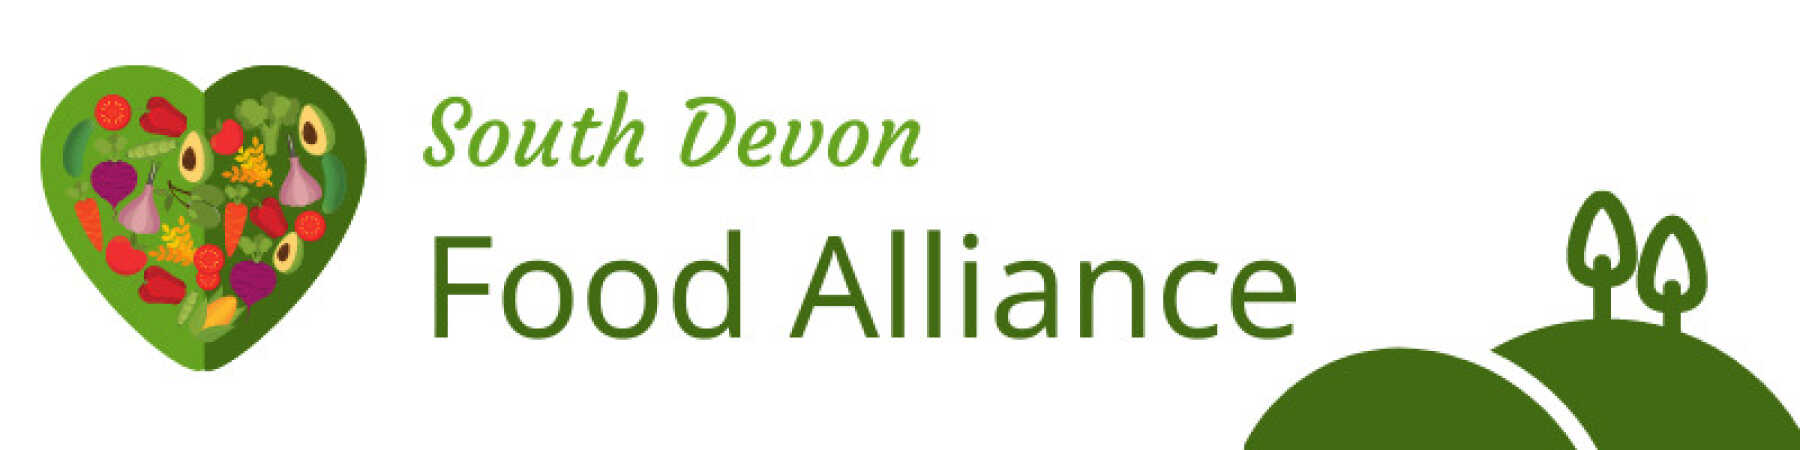 Featured Image for South Devon Food Alliance